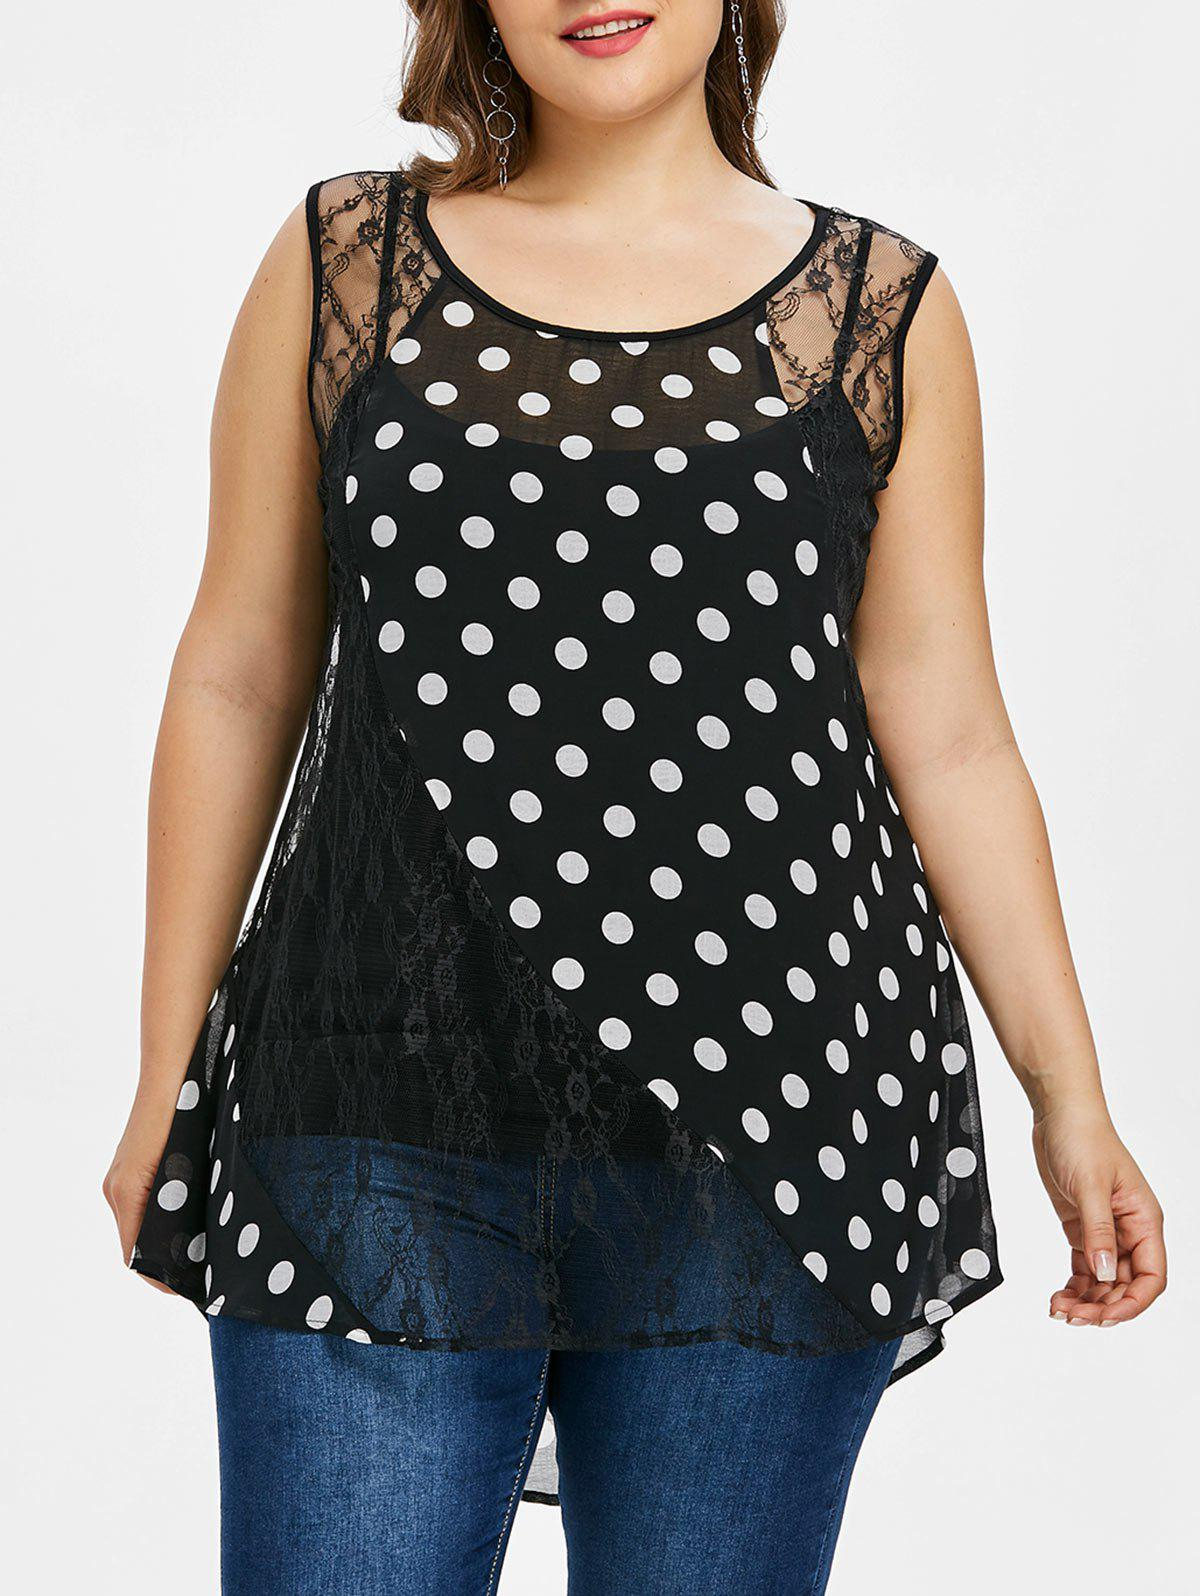 Plus Size Polka Dot Dip Hem Tank Top plus size polka dot button tank top